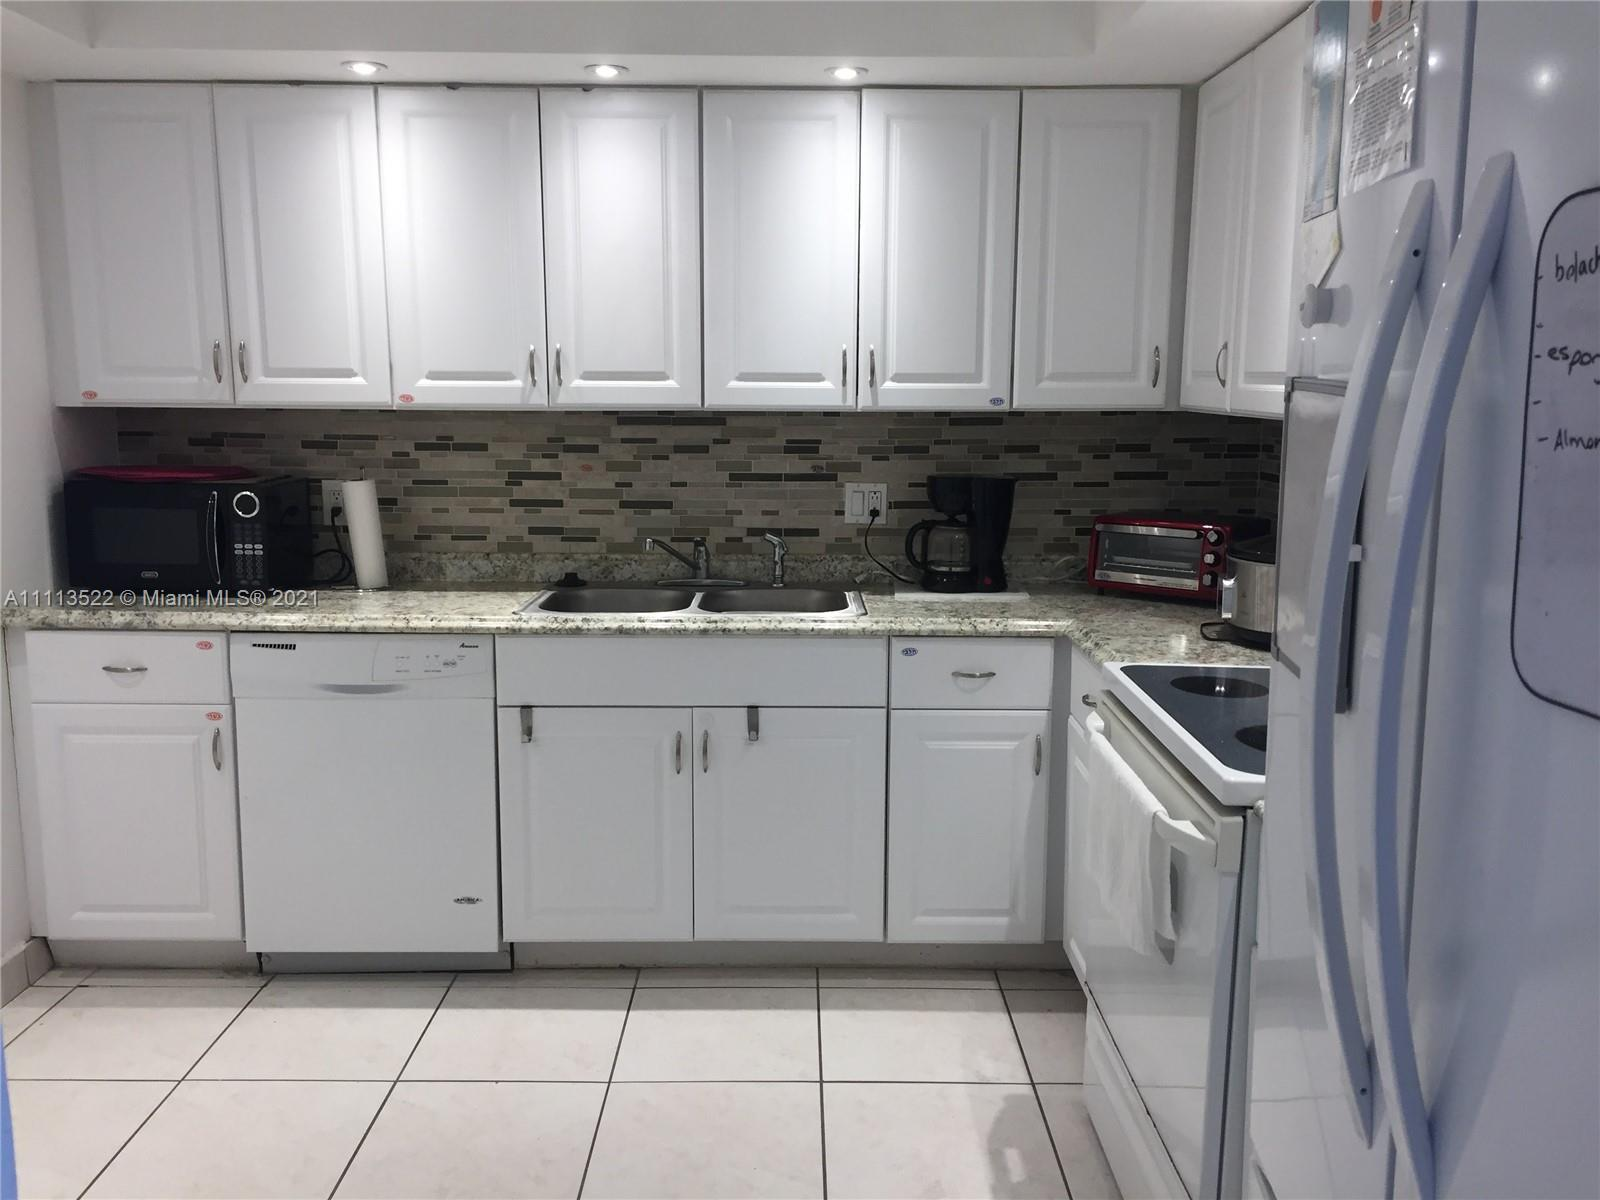 Remodeled 2 bedrooms 2 bathrooms in the heart of Aventura. Kitchen with white cabinets. Ceramic floo